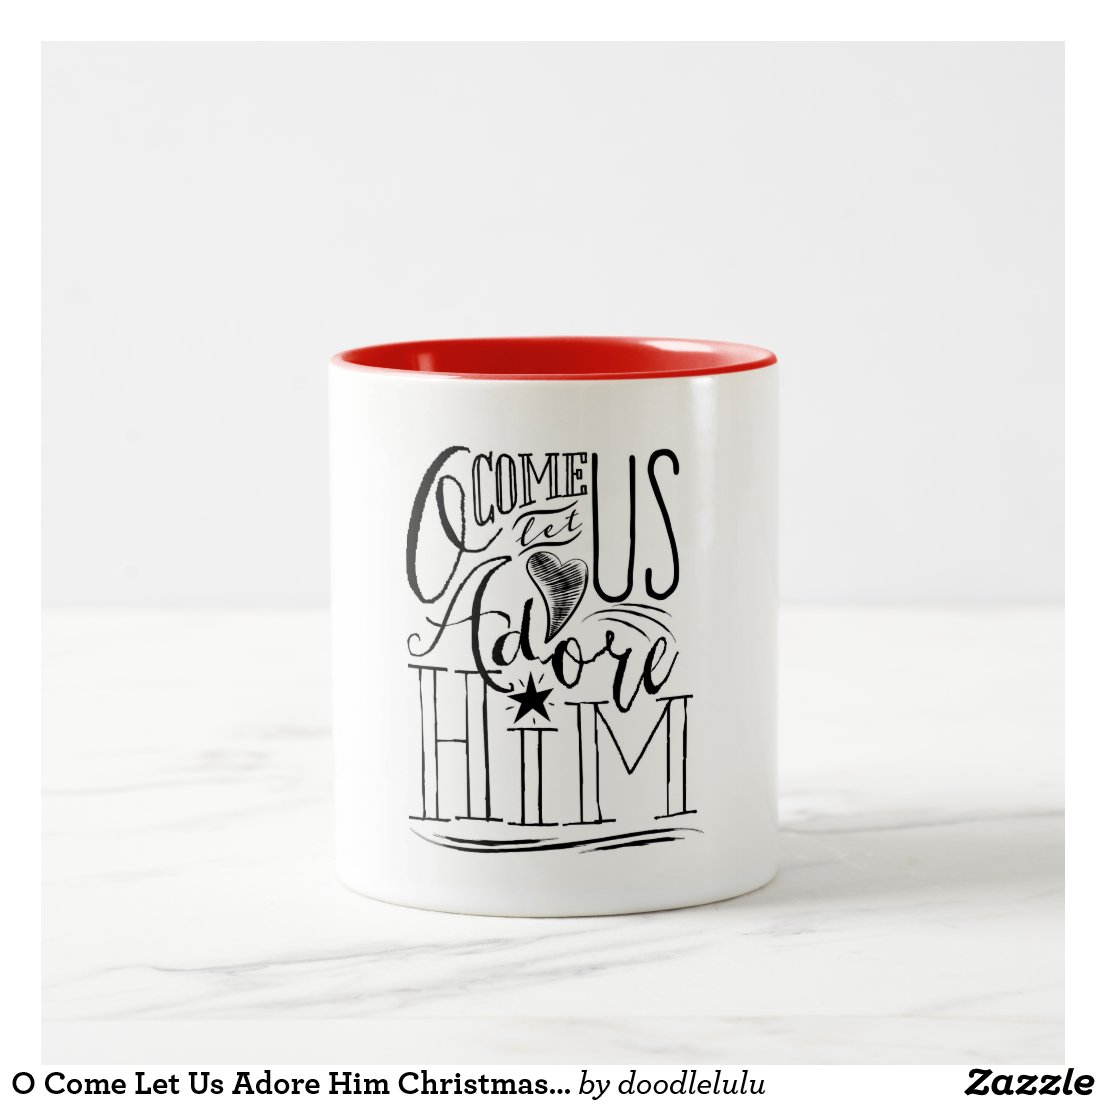 O Come Let Us Adore Him Christmas Coffee Mug